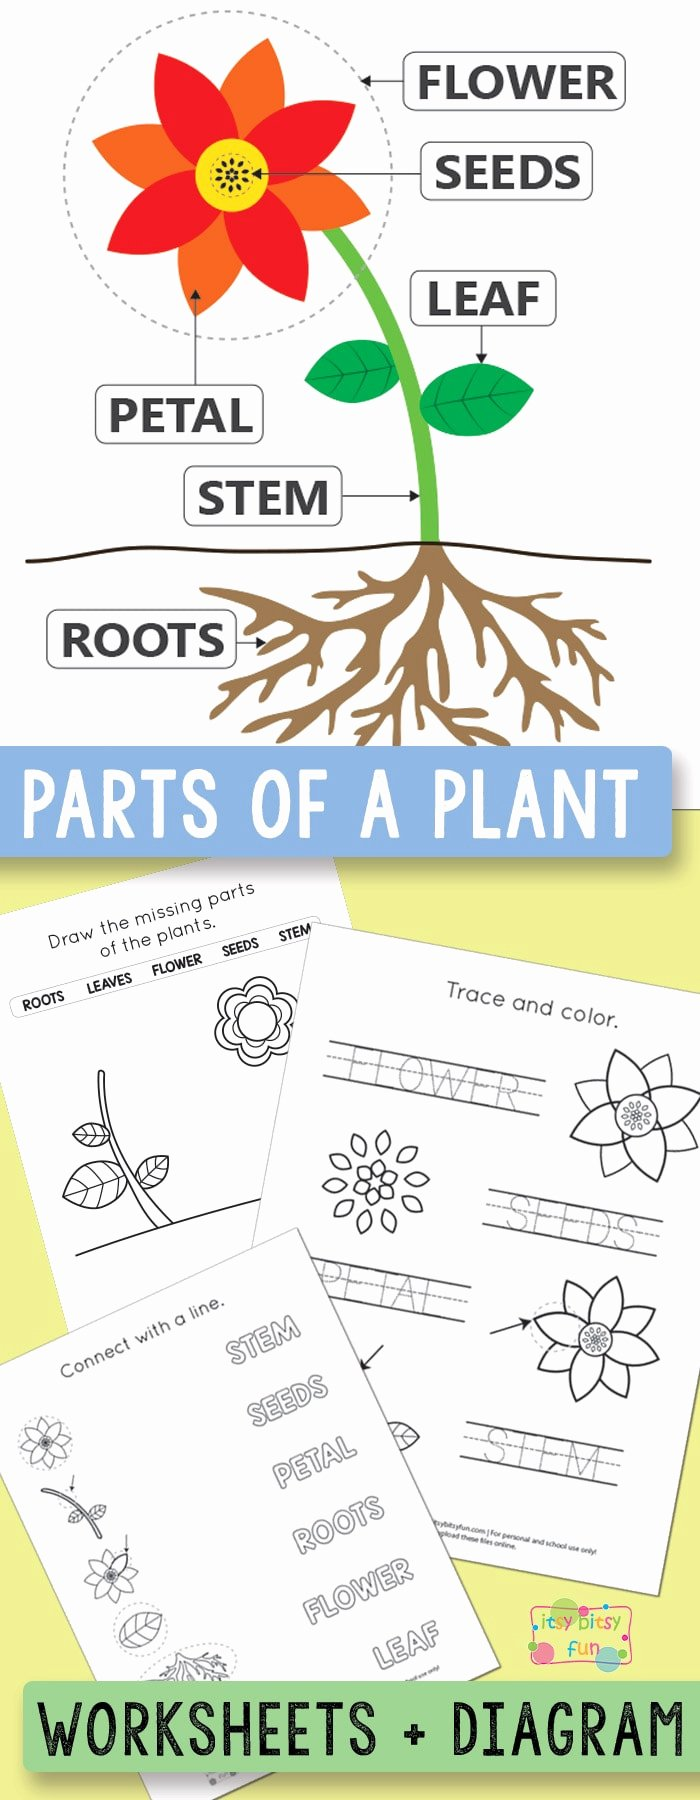 Plants Worksheets for Preschoolers Lovely Free Printable Parts Of A Plant Worksheets Itsybitsyfun